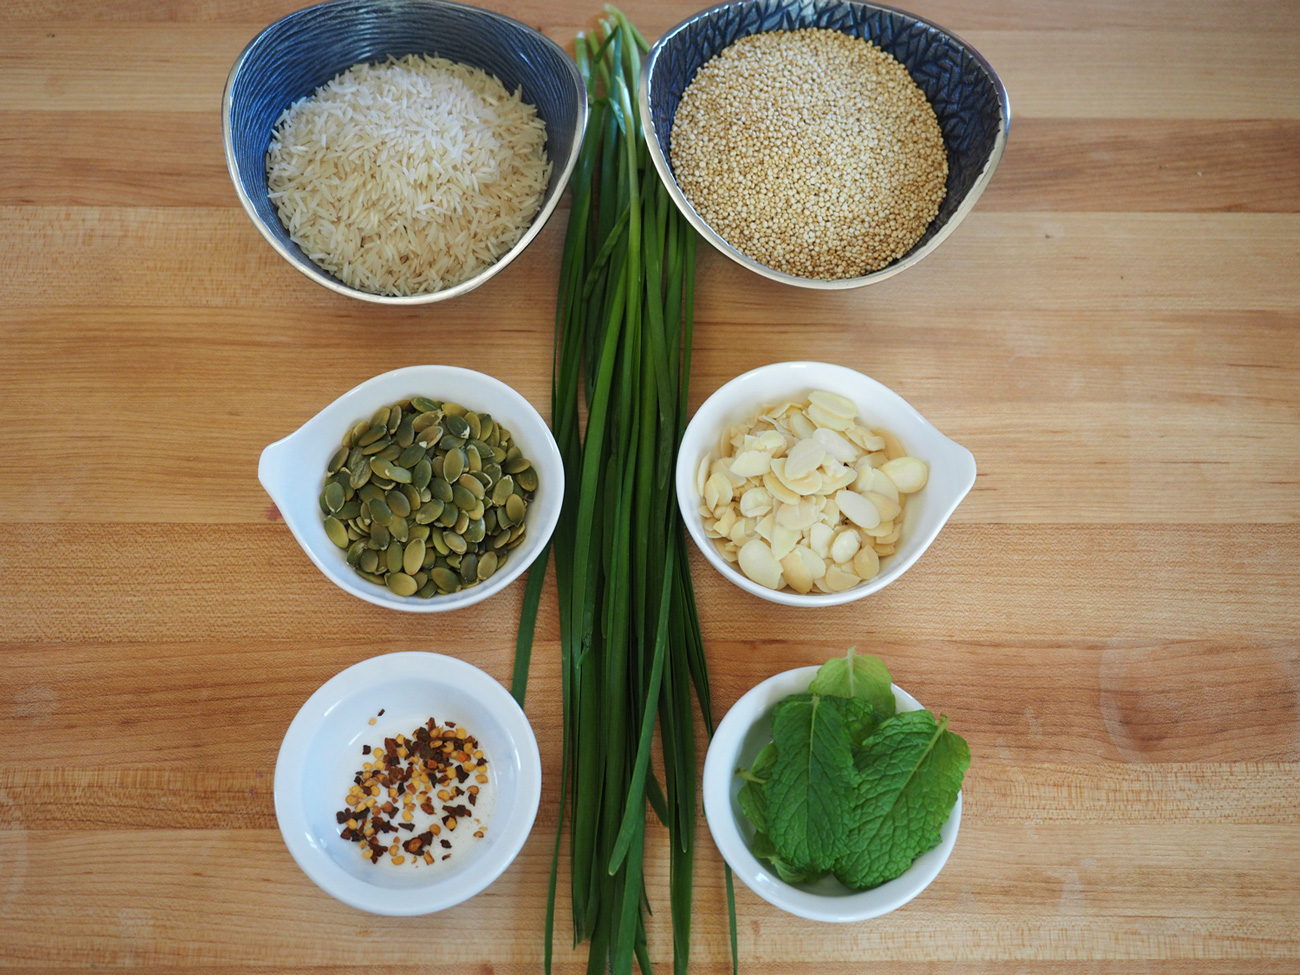 The main line up: Basmati Rice, Quinoa, Pepitas, Slivered Almonds, Fresh MInt, Red Pepper Flakes and Chinese Chives.